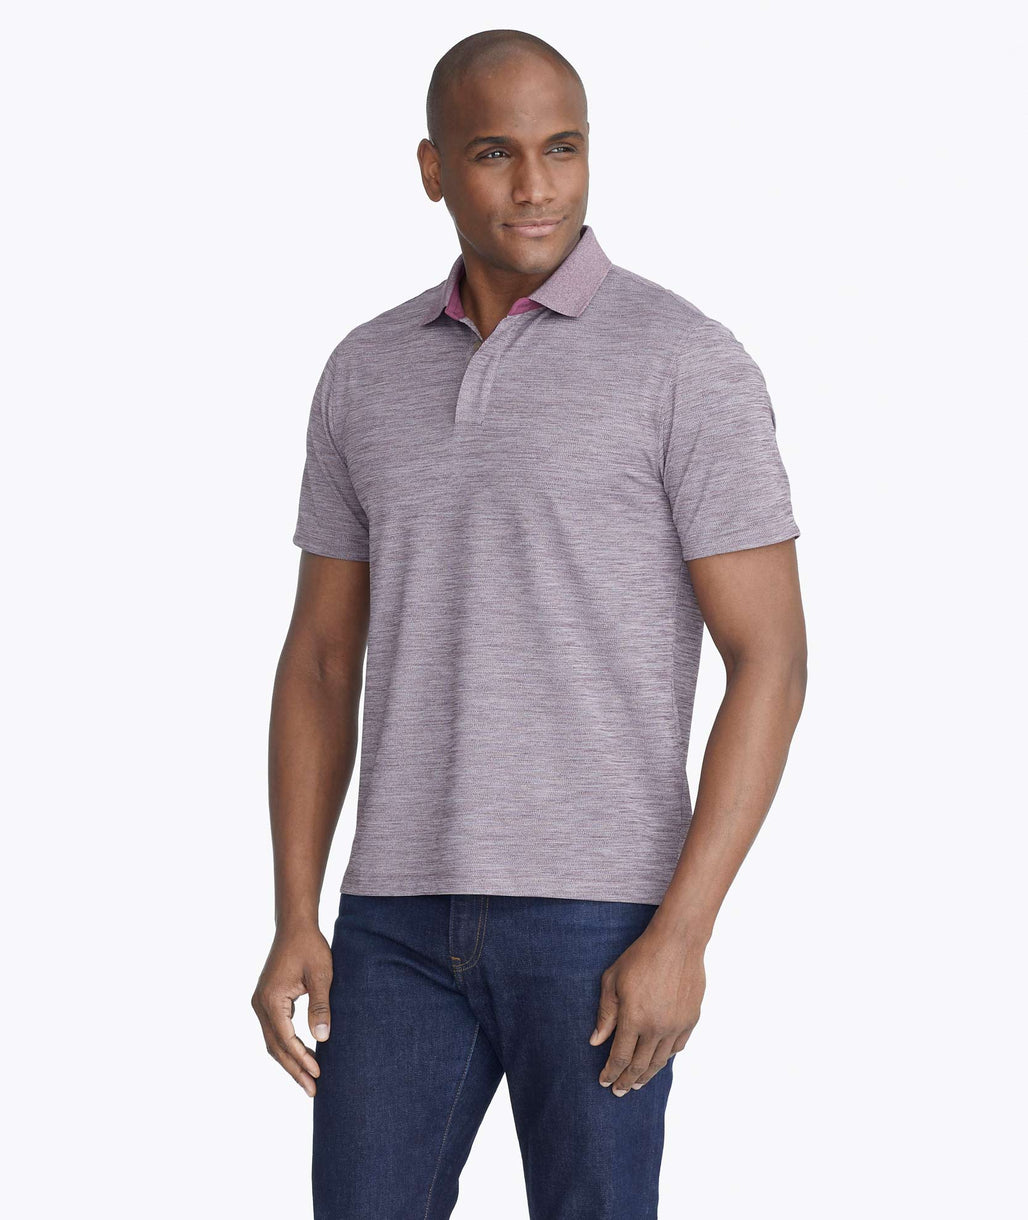 Model wearing a Purple Heathered No Sweat Polo